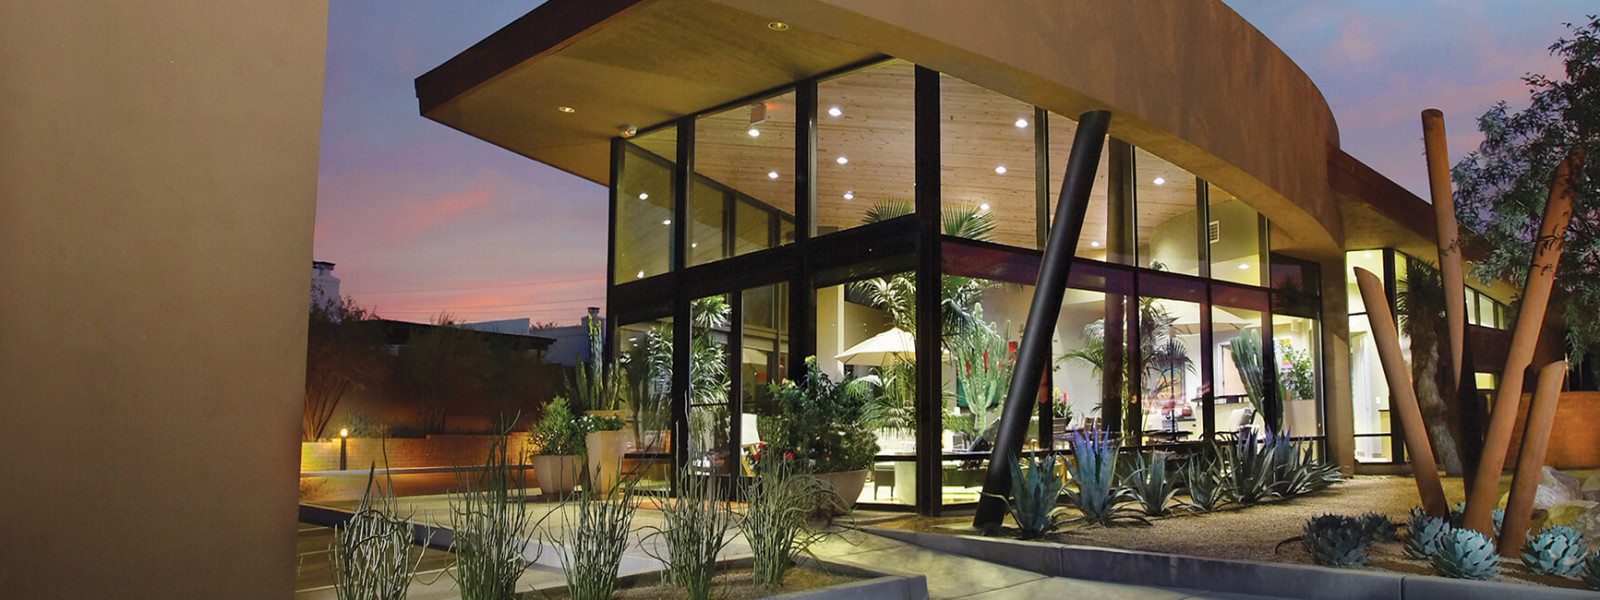 Contact The Garden Gate of Oro Valley - Serving Foothills and Tucson